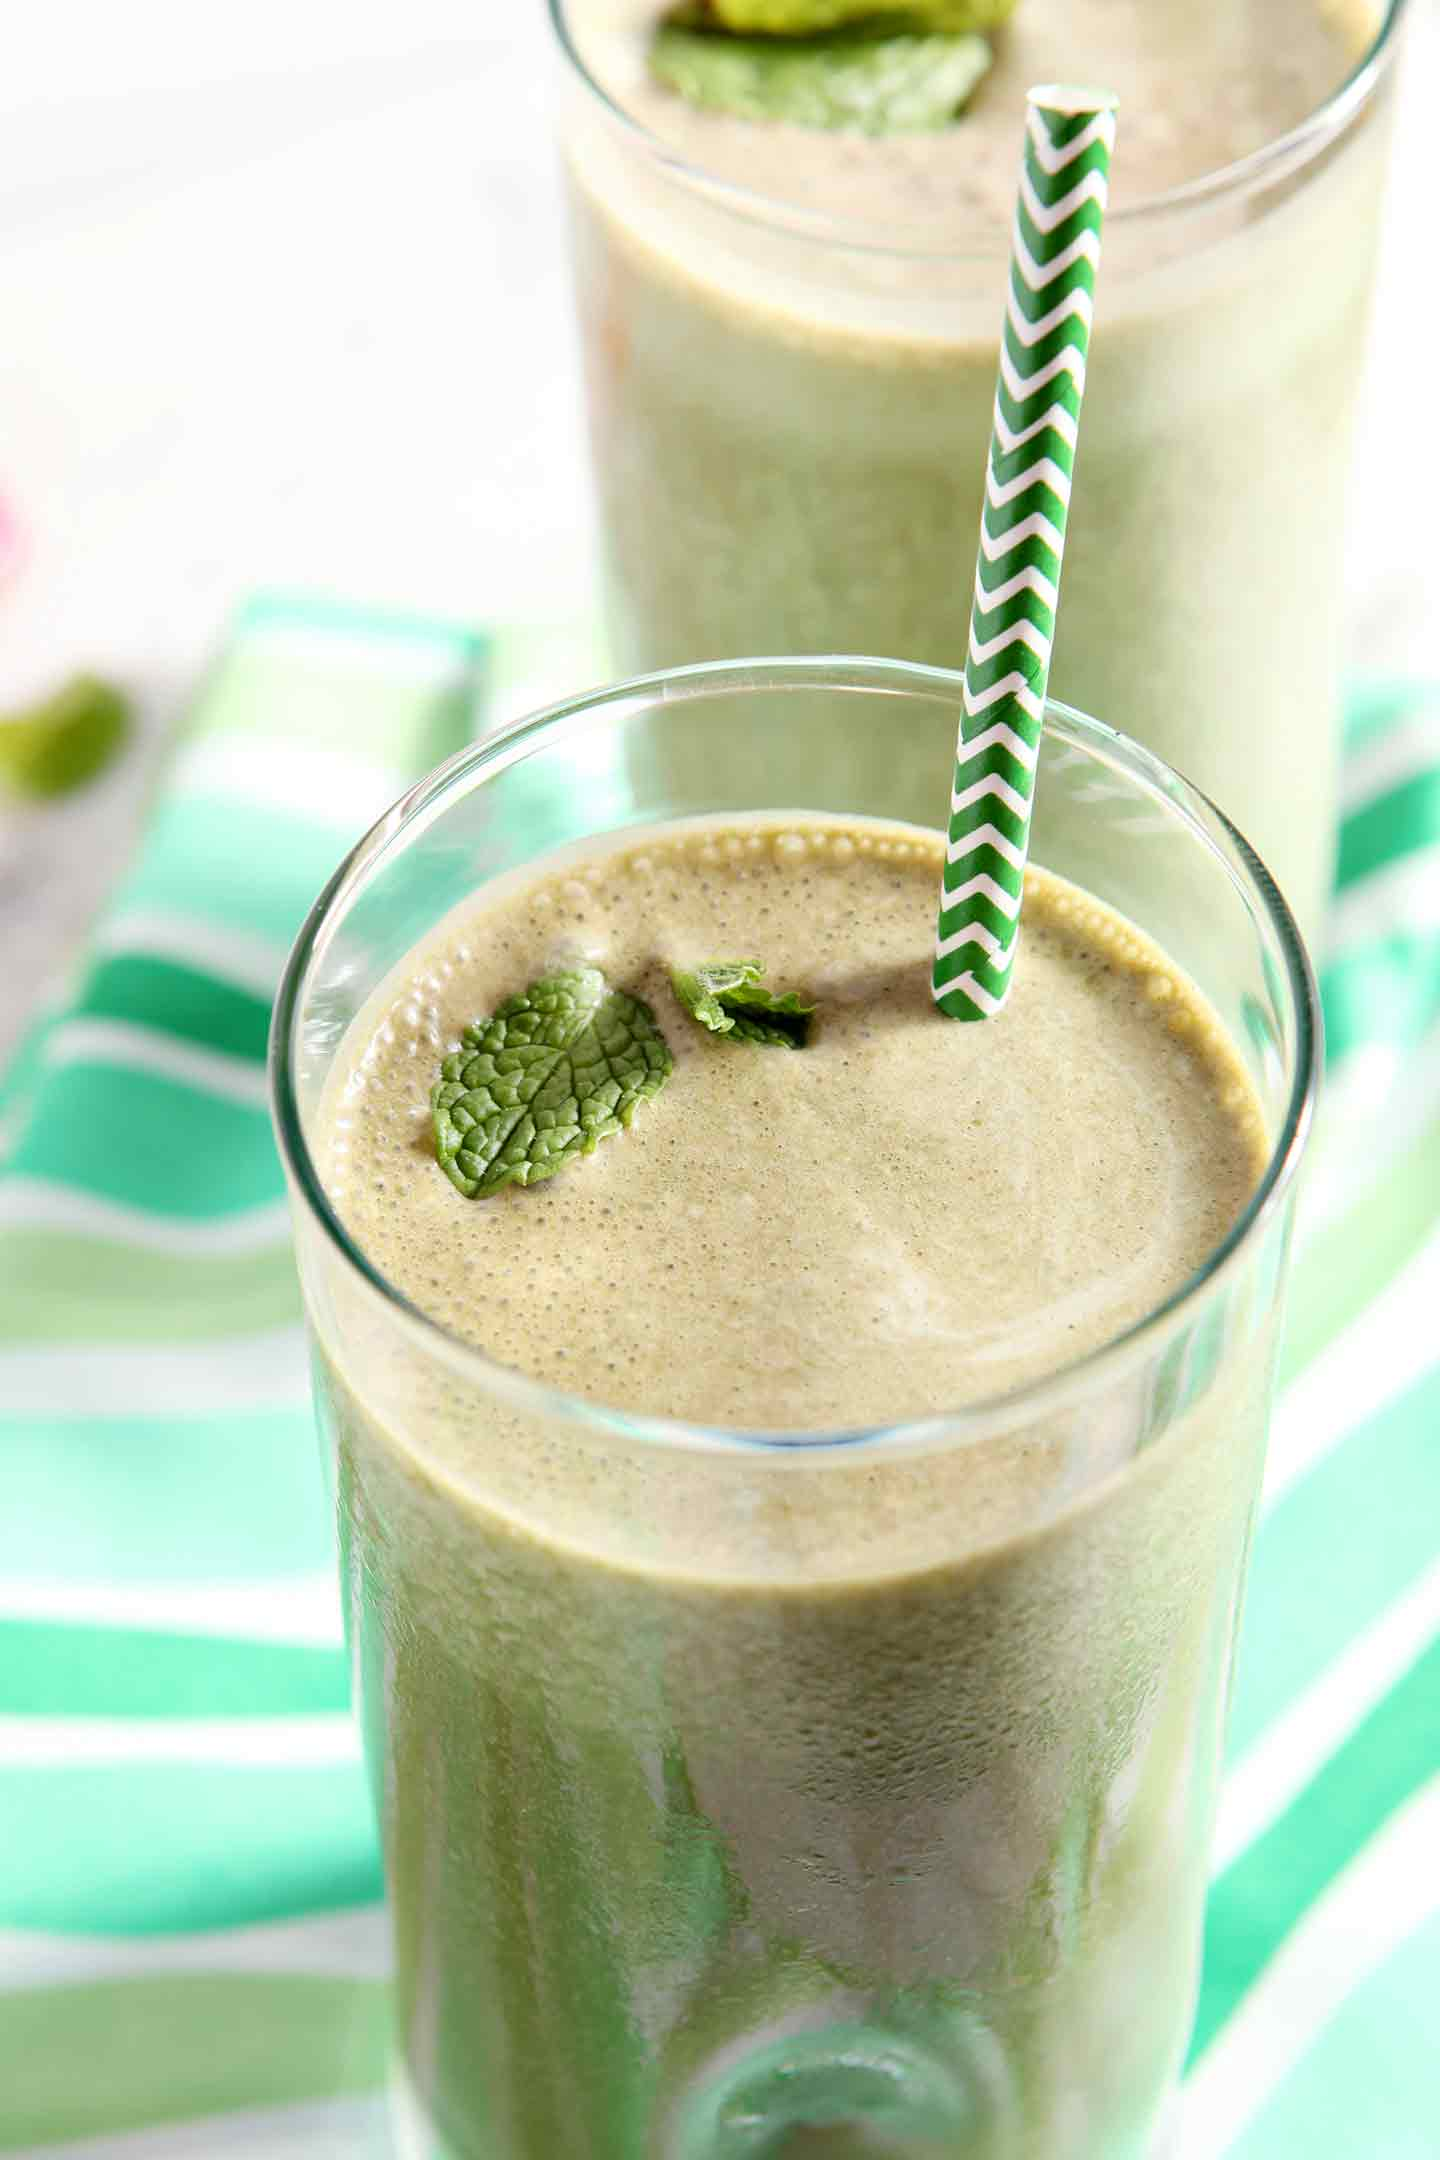 thin mint smoothie in a glass with a green straw